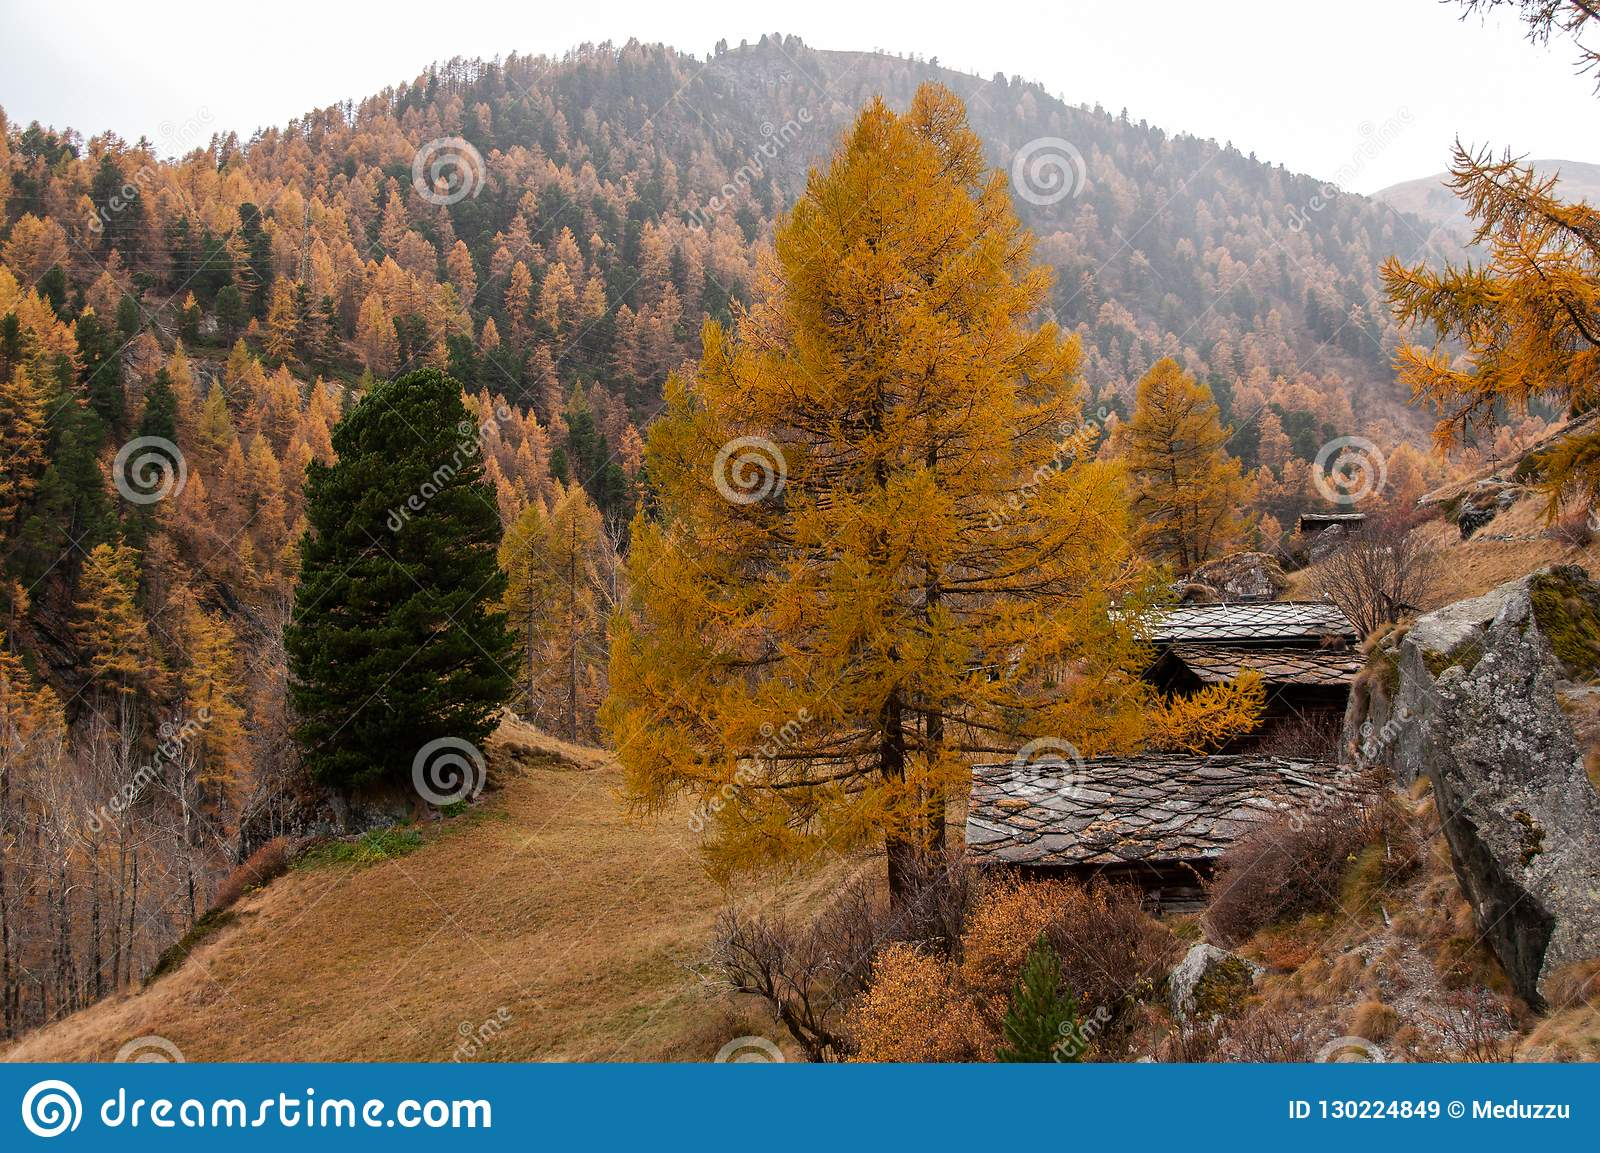 Beautiful autumn landscape with some old chalets in Zermatt area